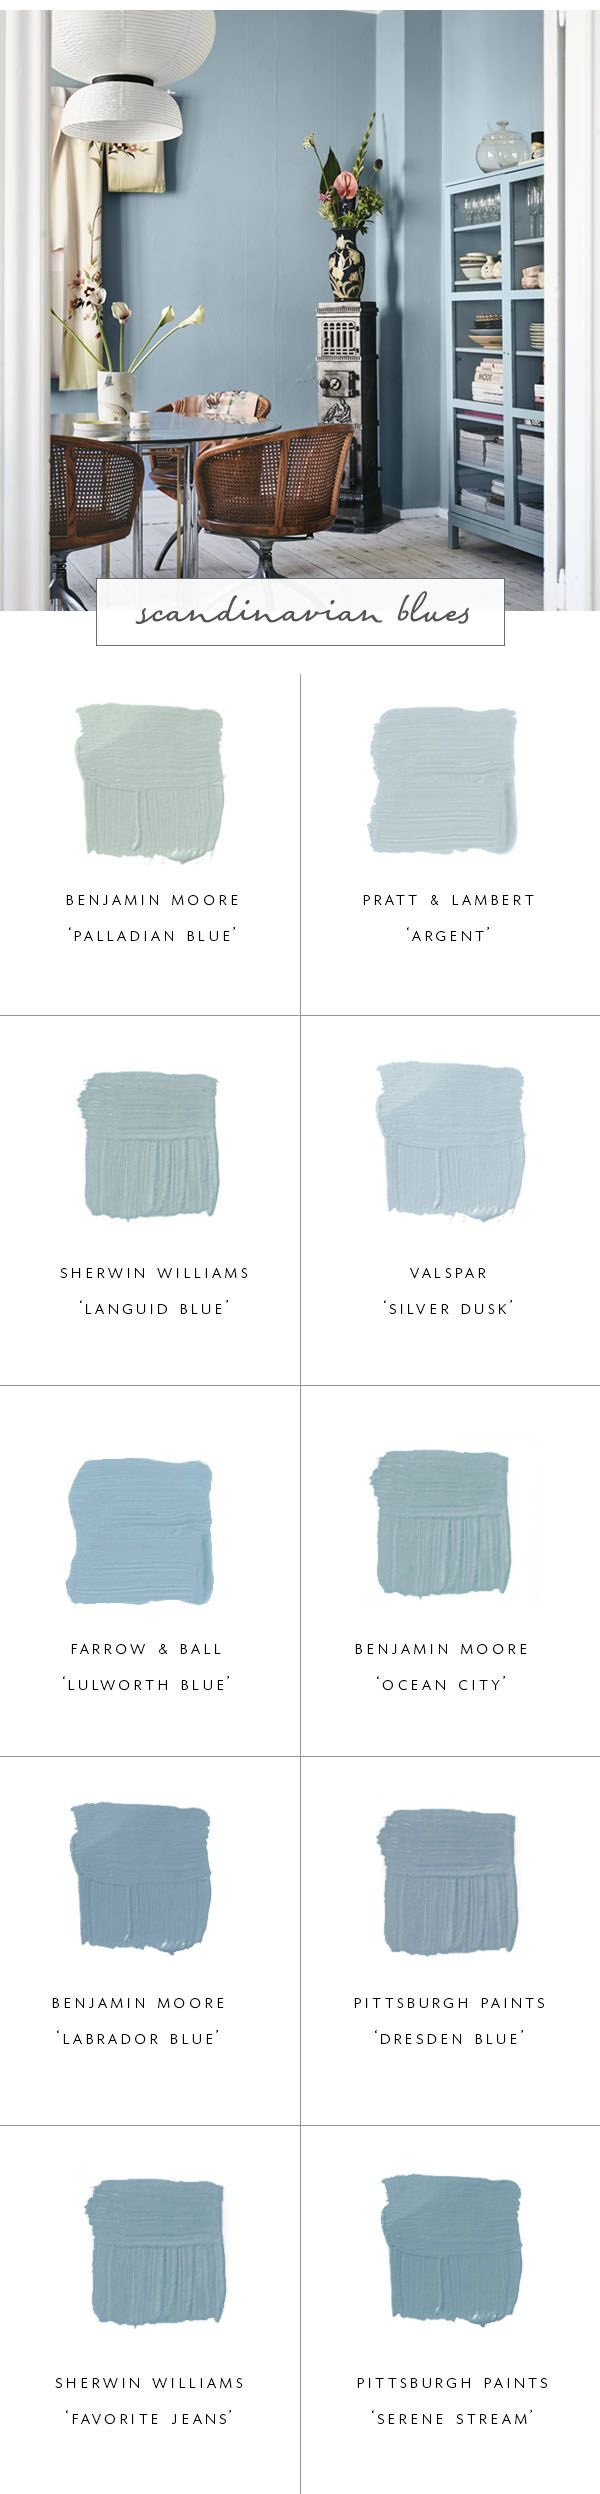 10 Perfect Scandinavian Blue Paint Colors for Your Home